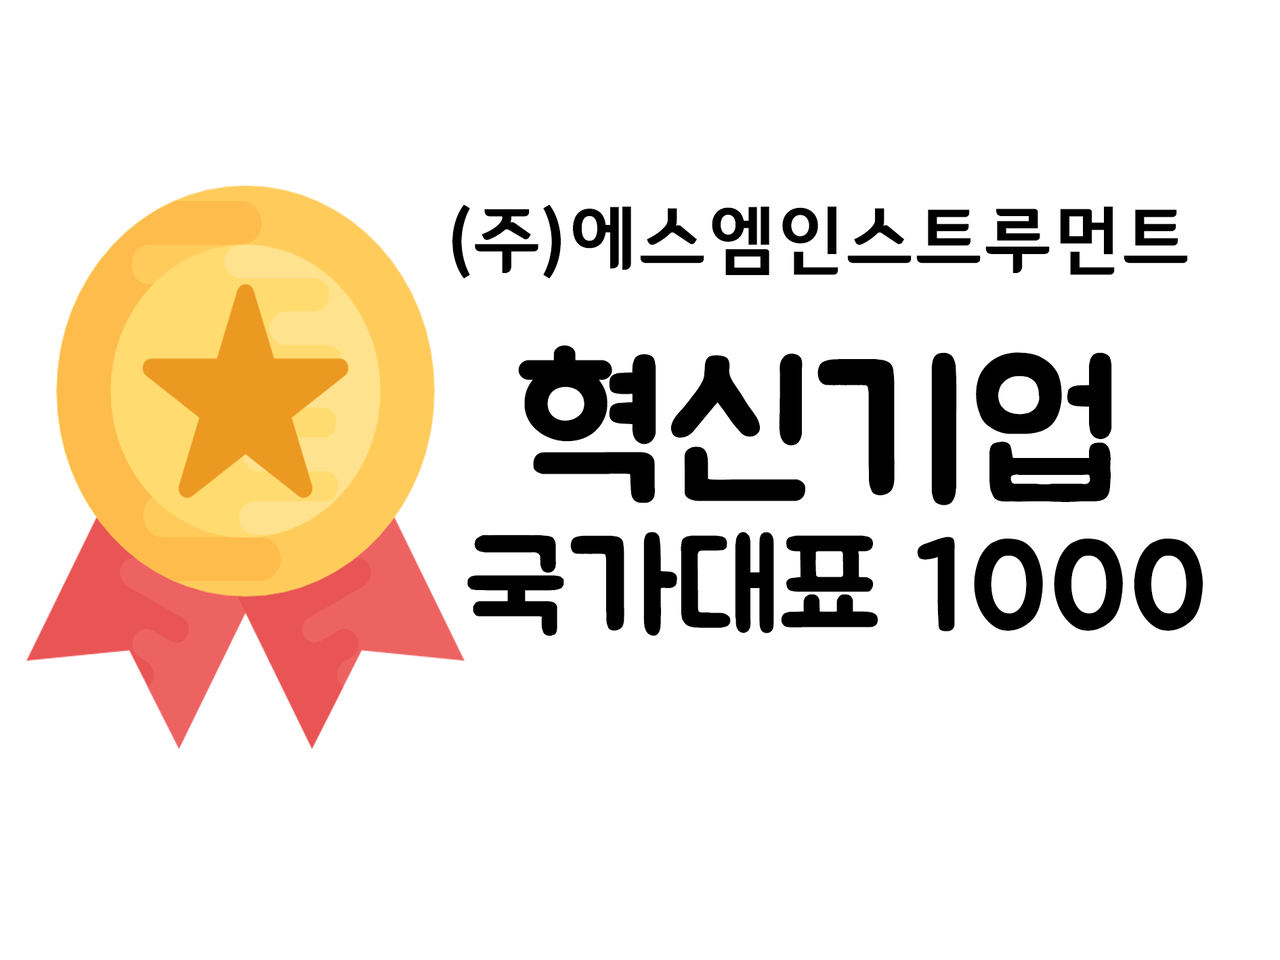 'National Innovative Enterprise 1000' selected by Ministry of SMEs and Startups